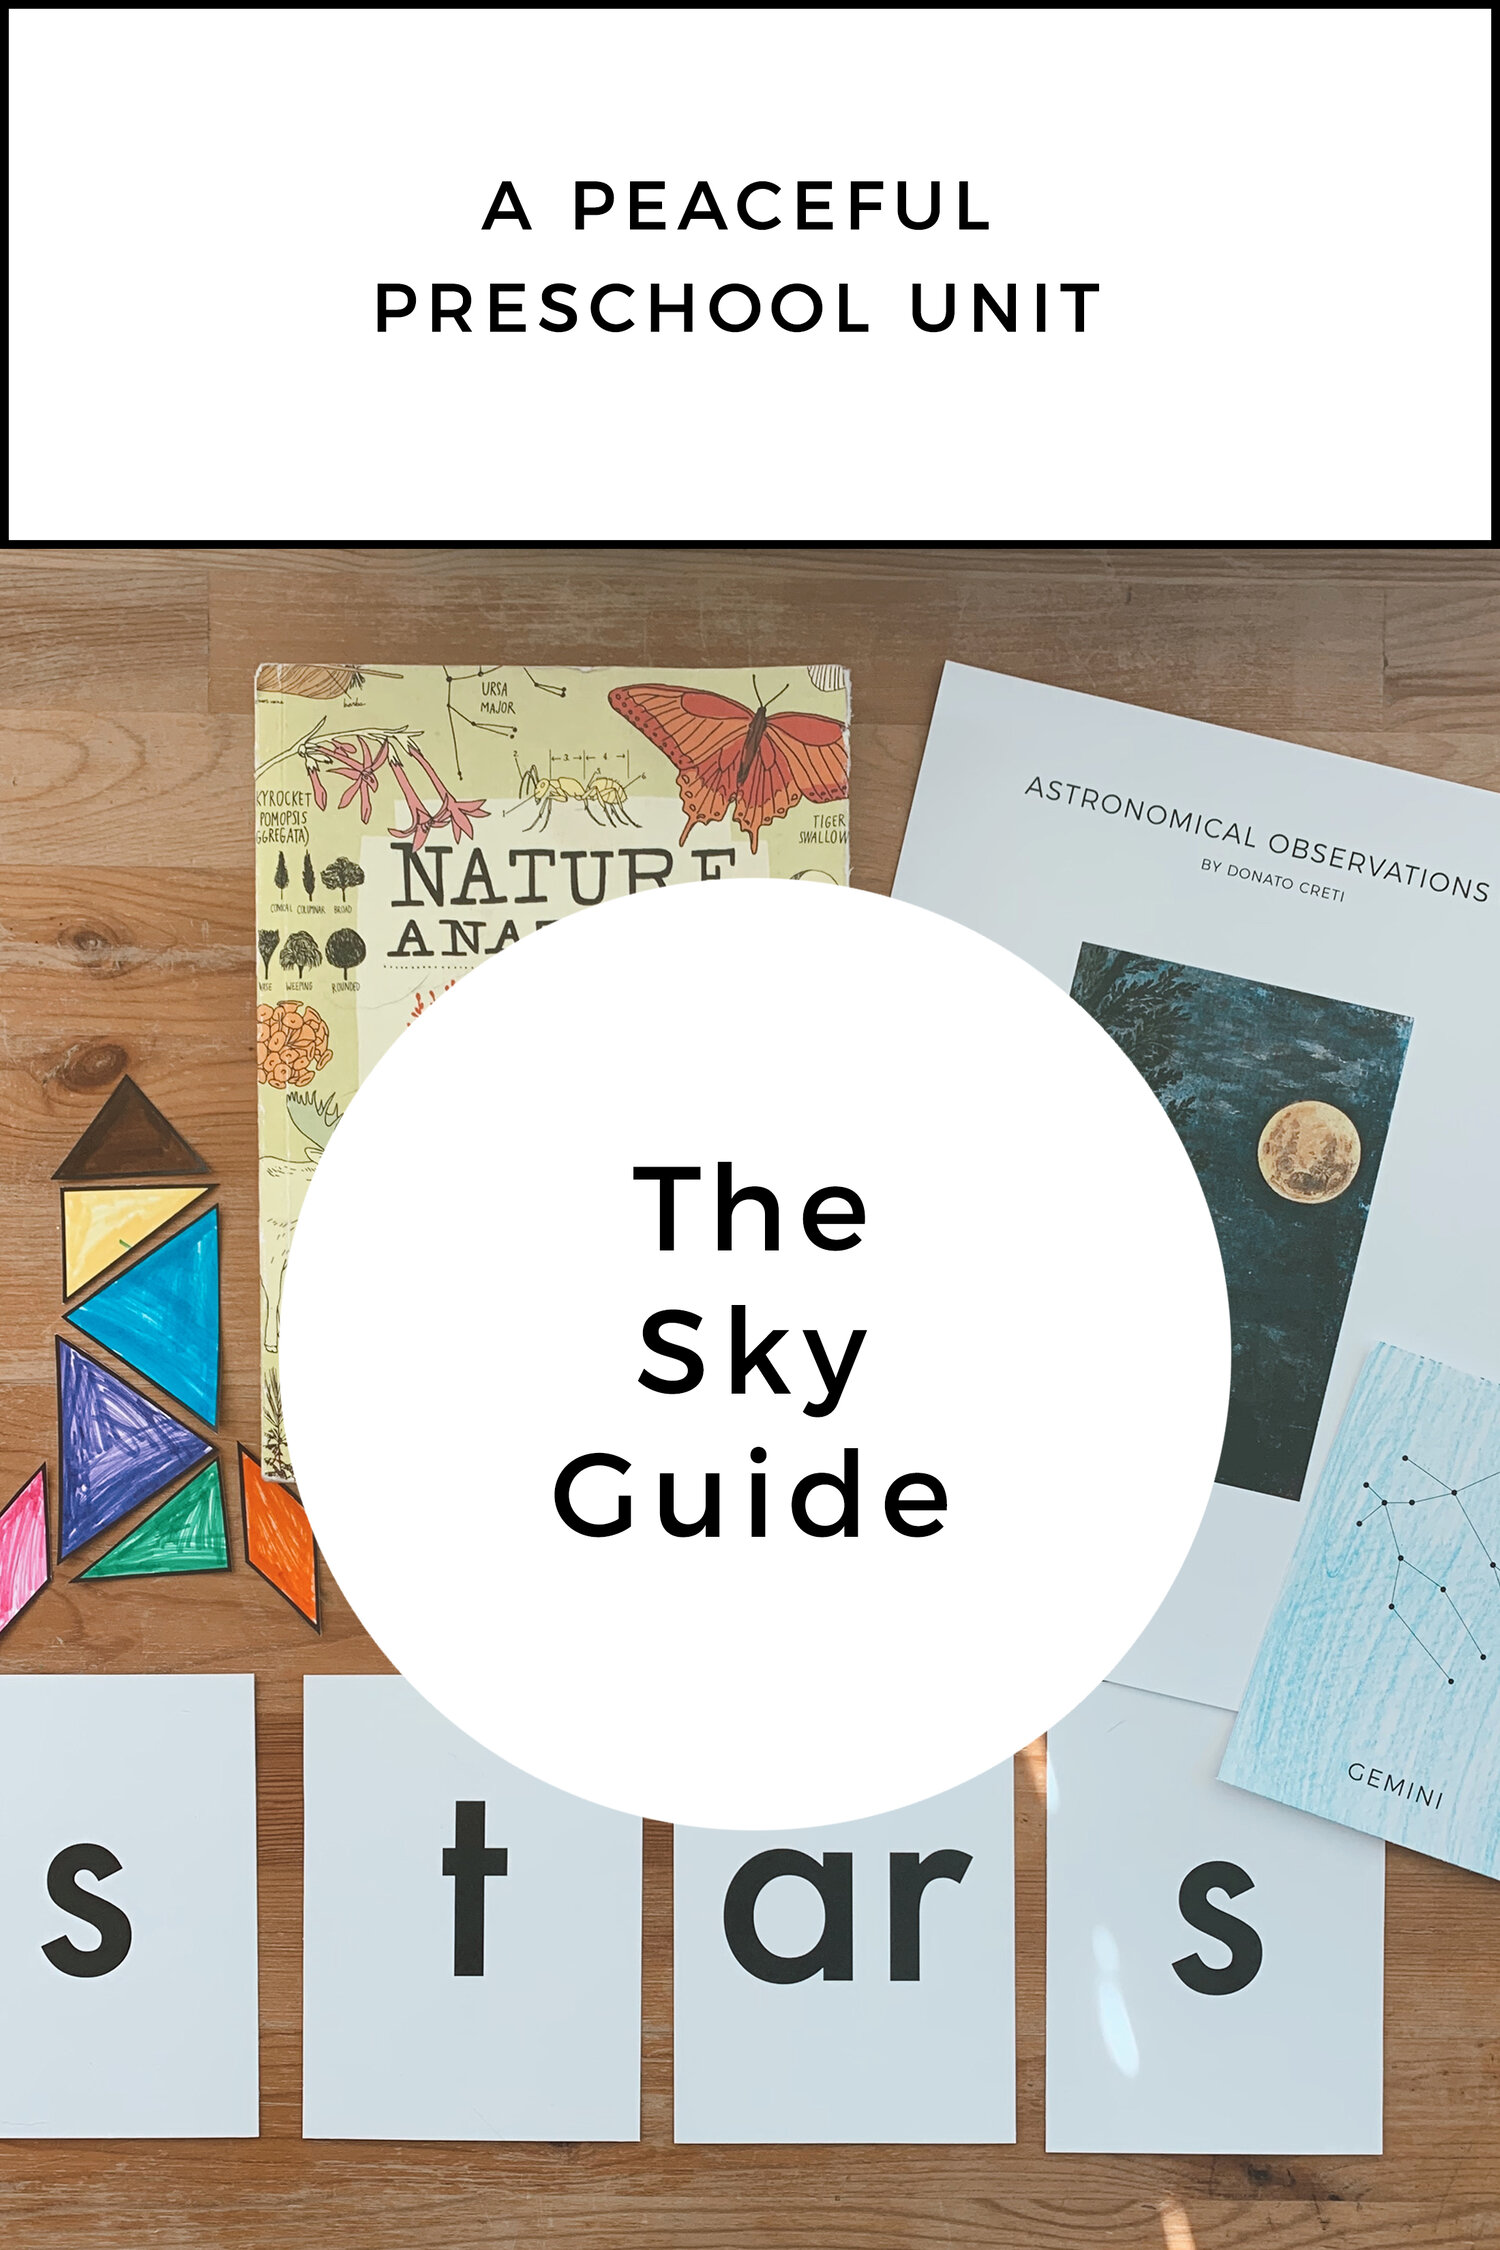 The Peaceful Preschool: Sky Guide  includes four weekly grids with activities to follow the work begun in  The Peaceful Preschool.  Your   3-6 year old child will continue developing large and fine motor skills, phonics and counting skills, along with their love for literature through the stories and projects included in  The Peaceful Preschool: Sky Guide.